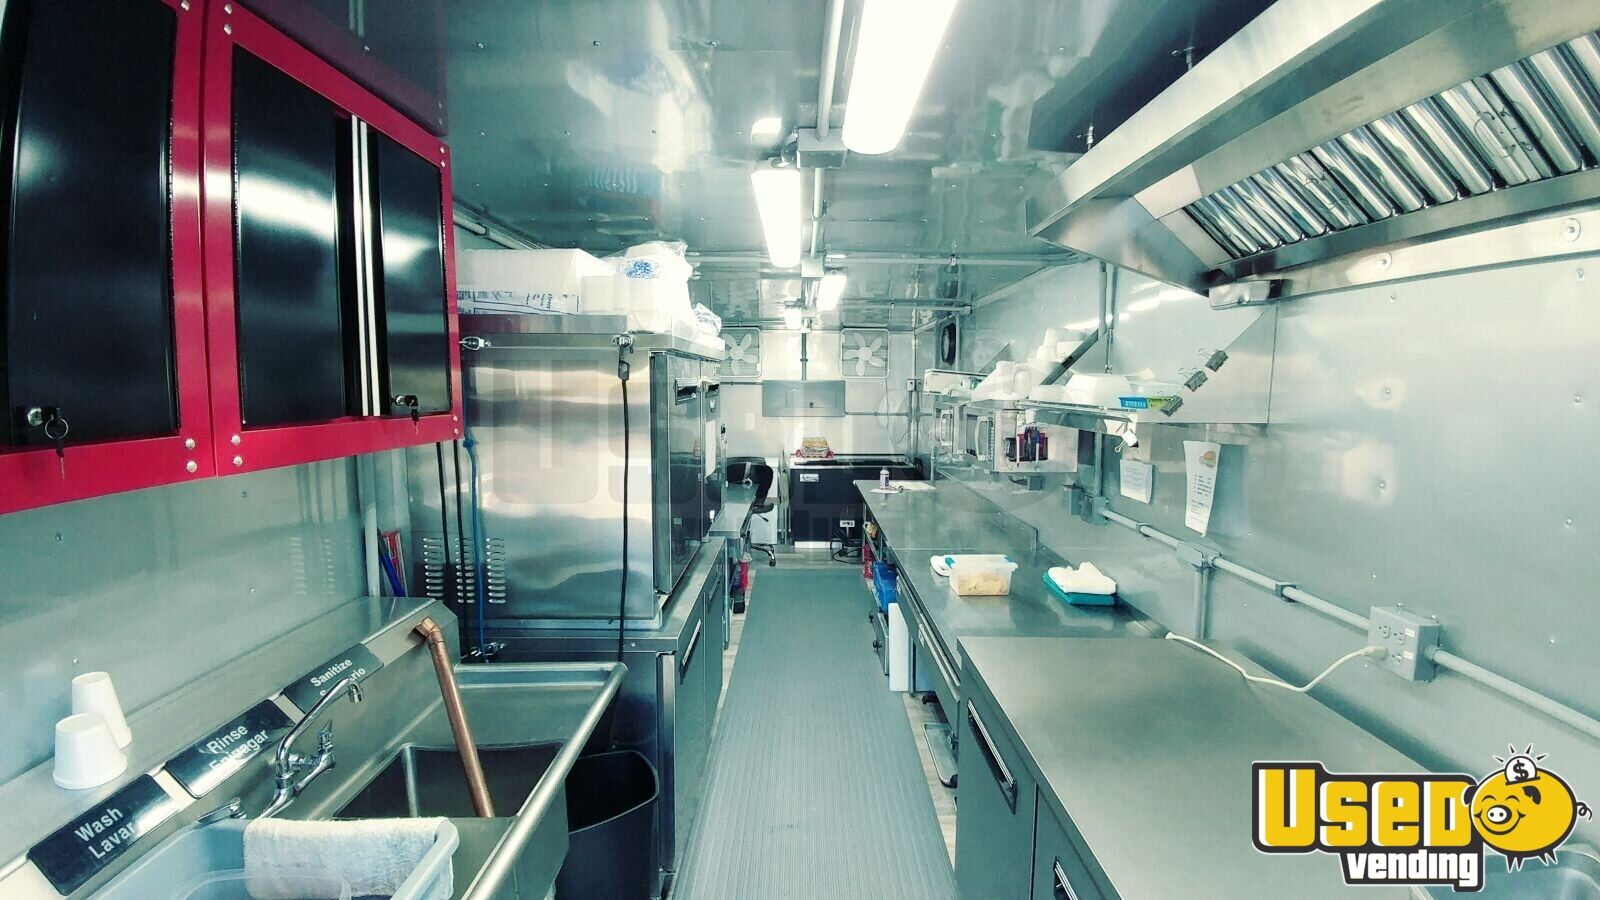 2017 Freedom Trailer All-purpose Food Trailer Insulated Walls Maryland for Sale - 5